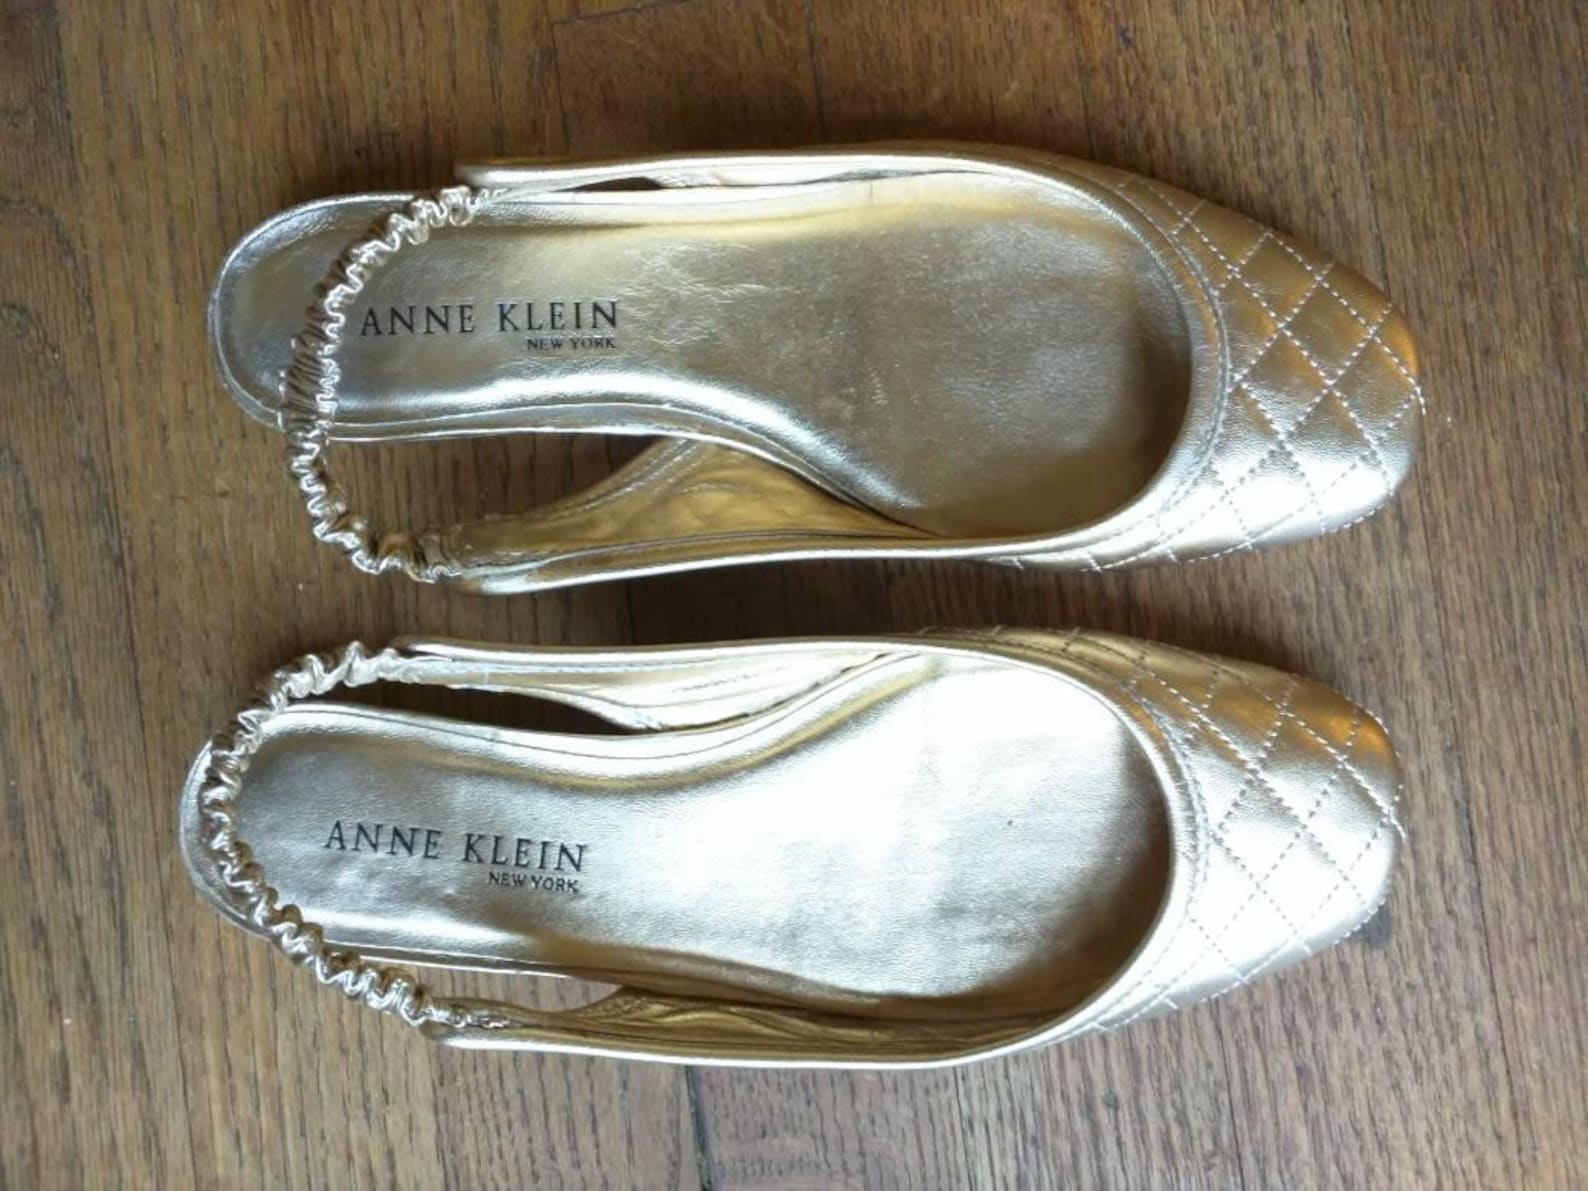 anne klein quilted leather gold ballet flats size 7 preppie nineties classic sling back